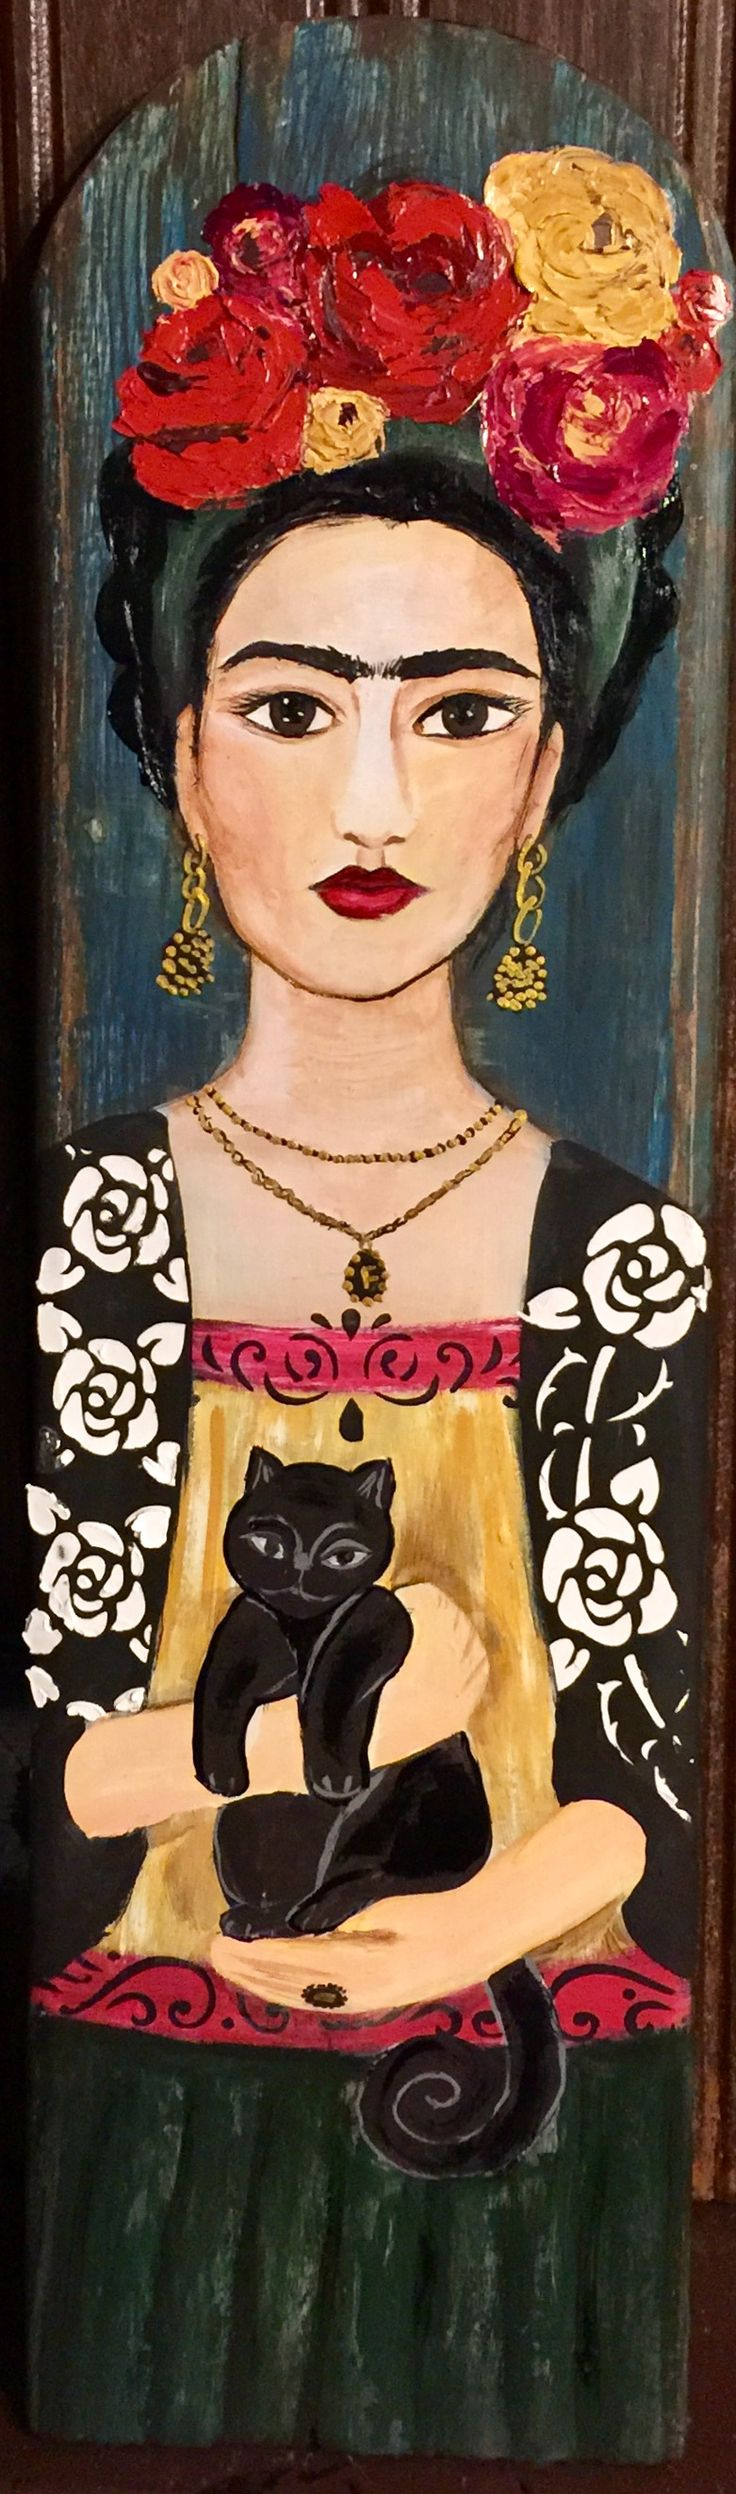 Frida with a cat